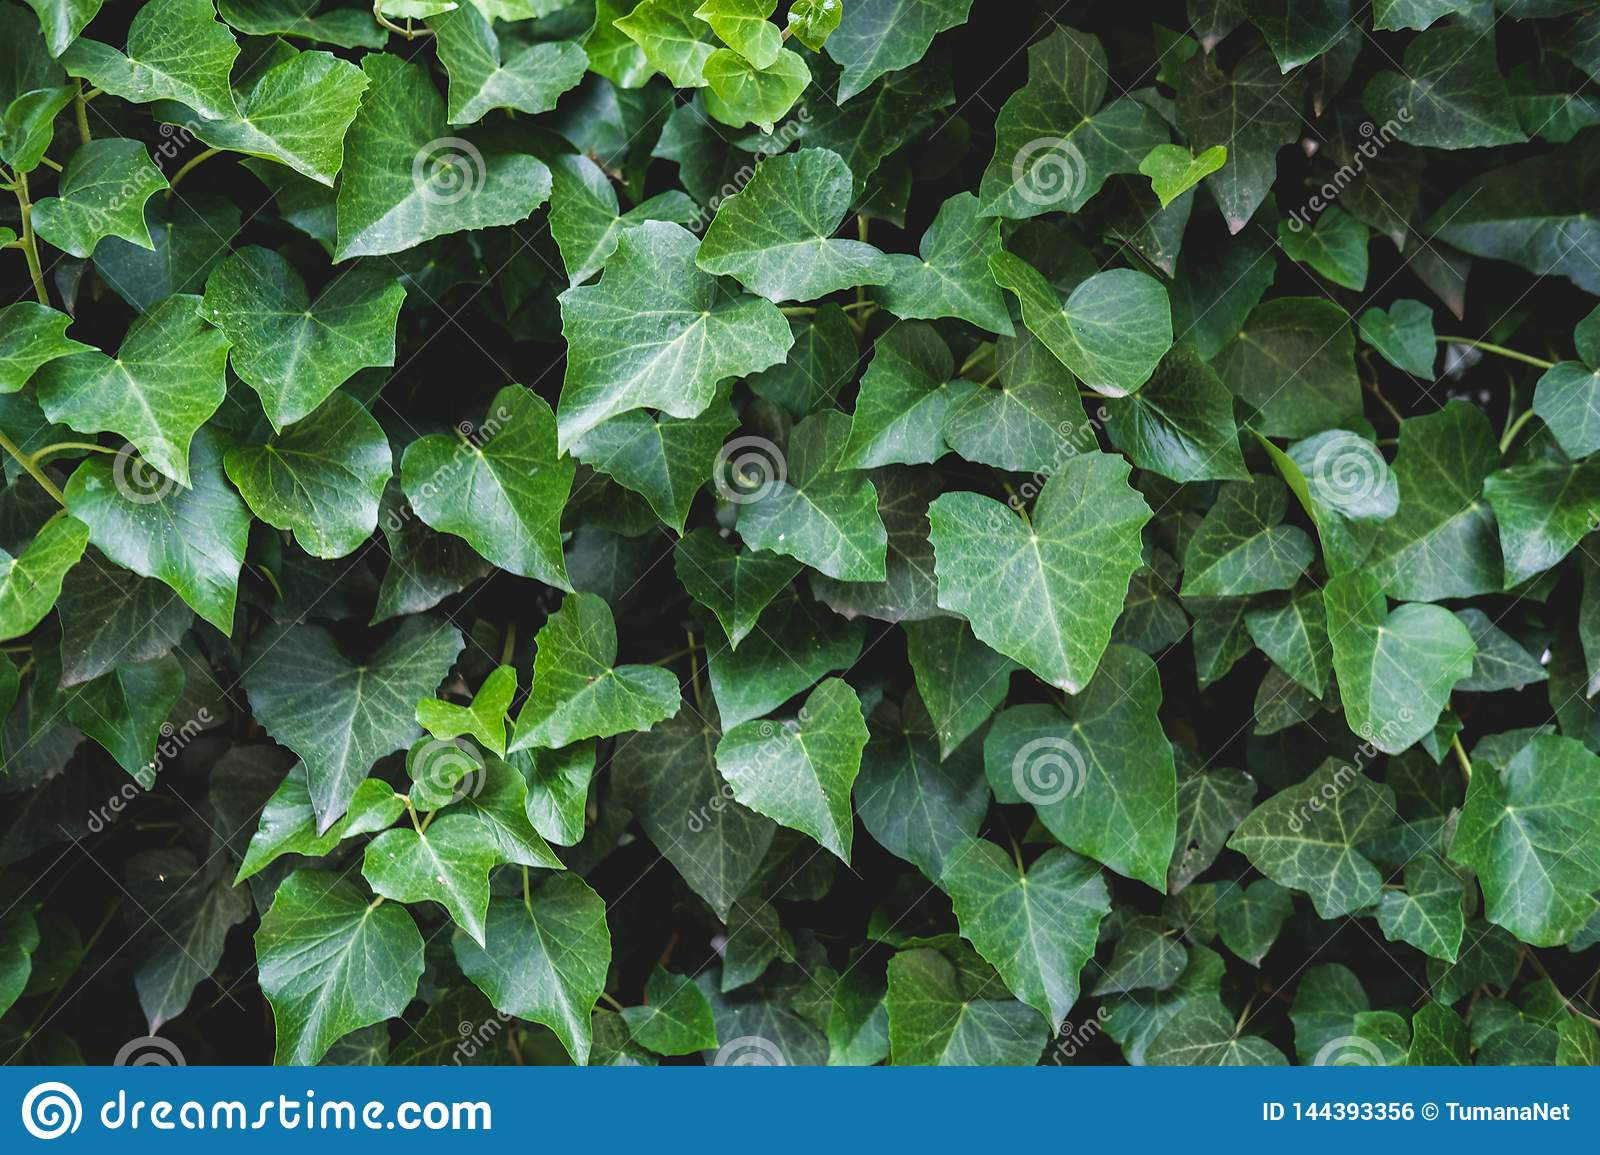 Green floral pattern of leaves. Natural background from above. Top view.